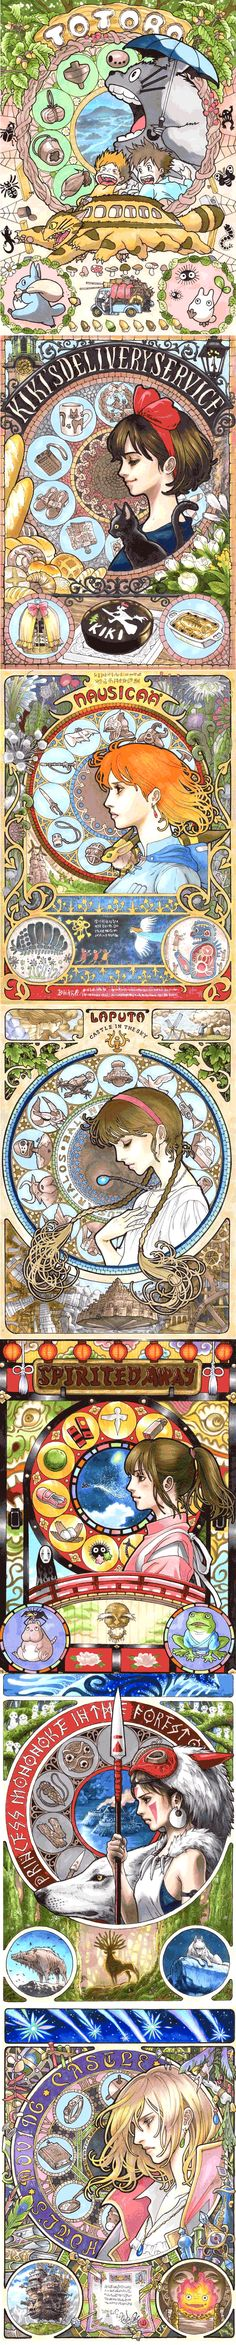 STUDIO GHIBLI VS. ART NOUVEAU ~SQUEEE!!! This is fantastic!!